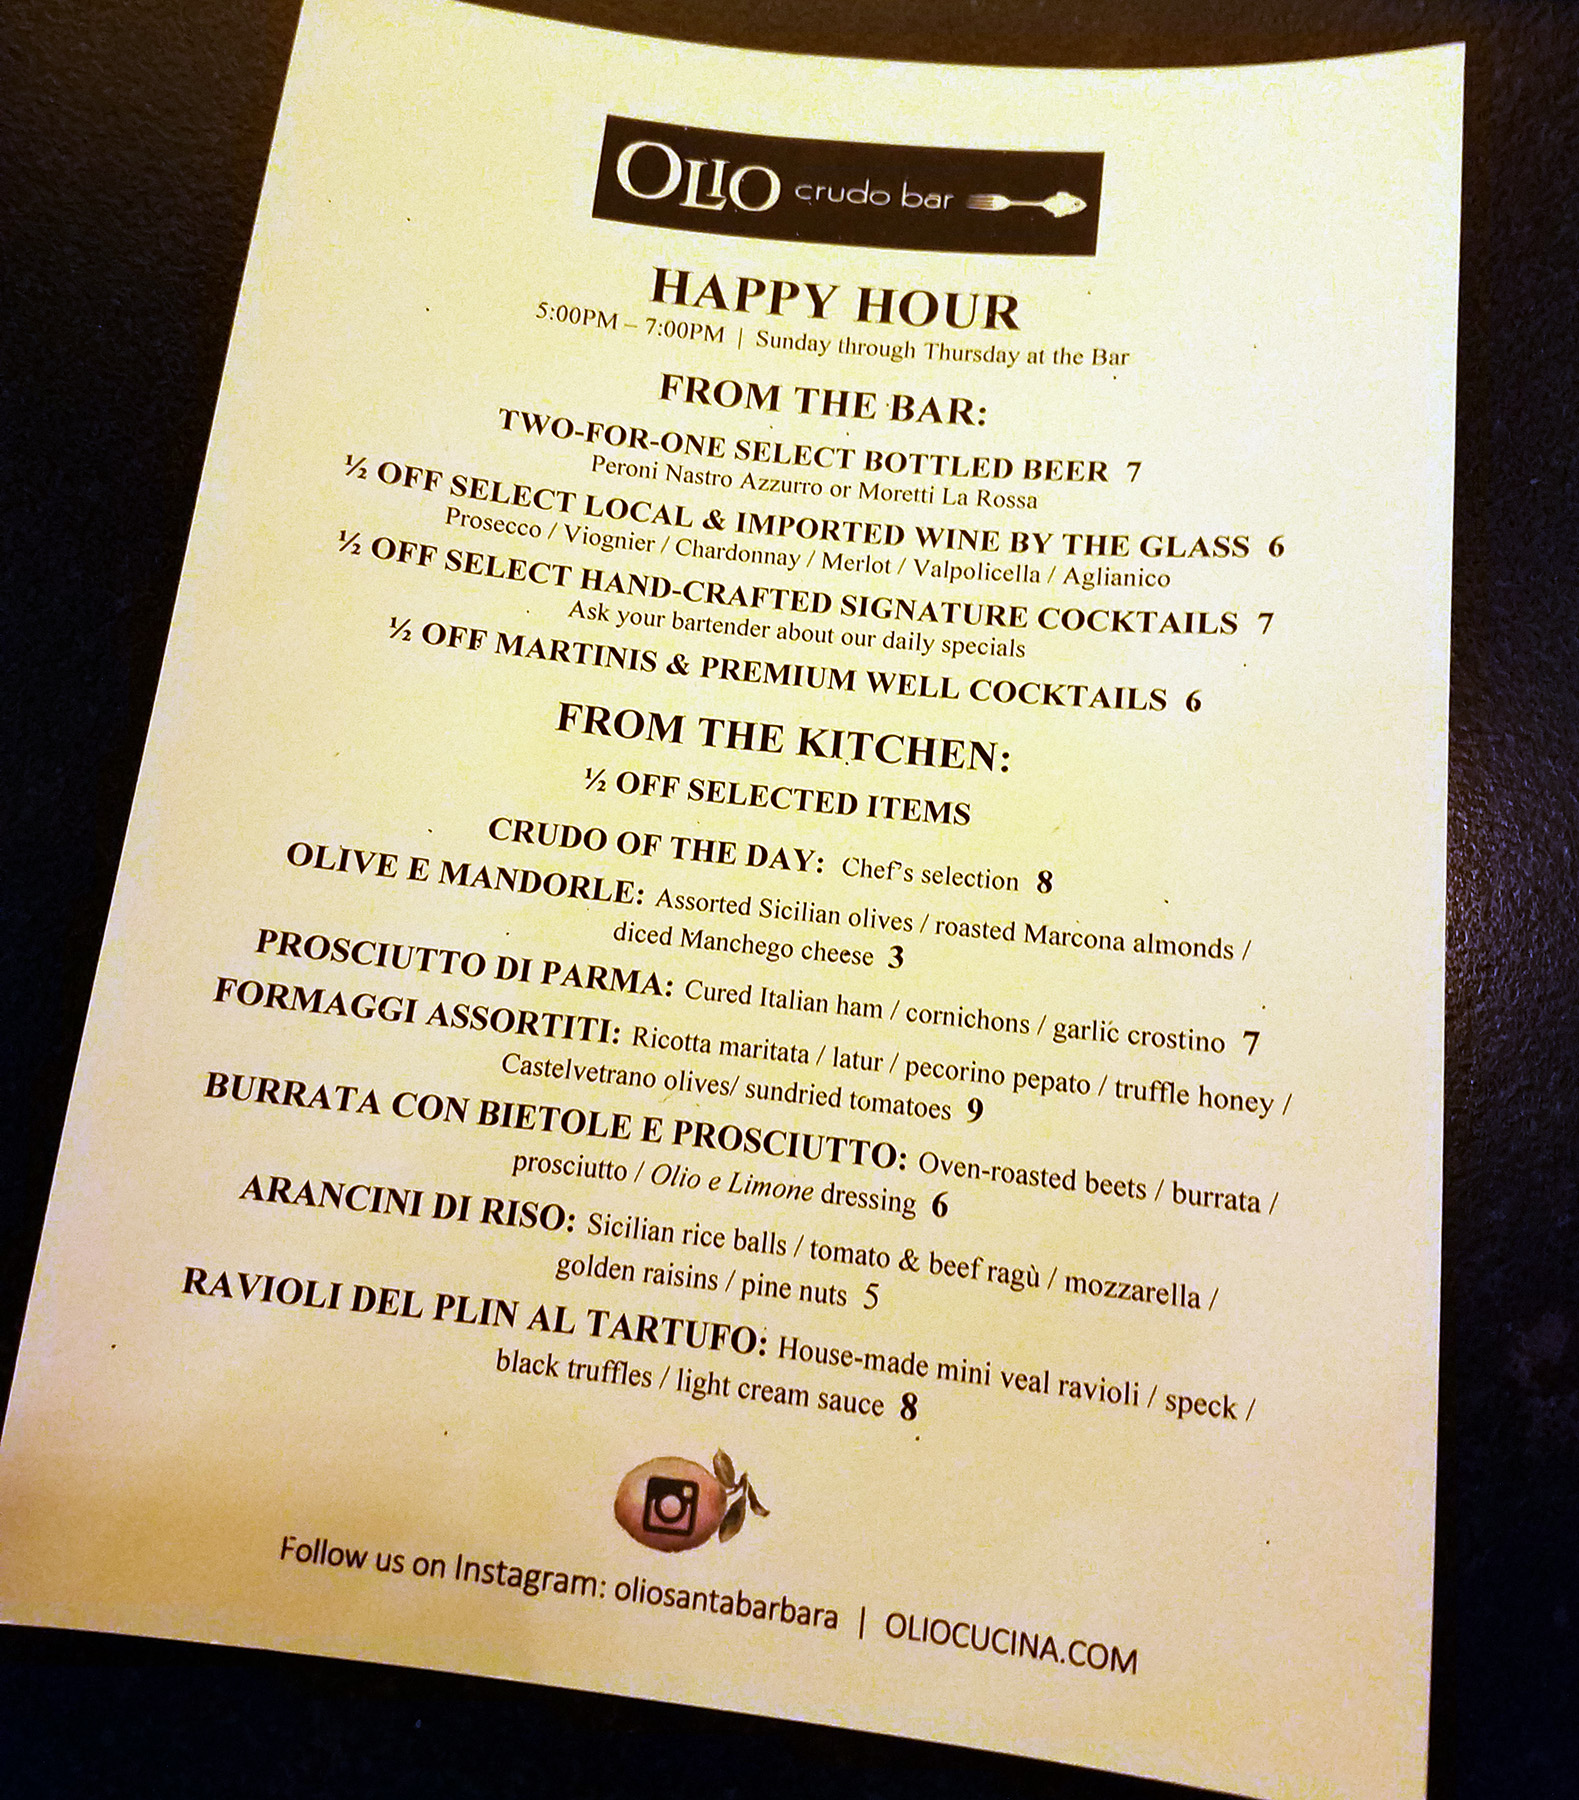 Olio Crudo Bar Happy Hour Menu